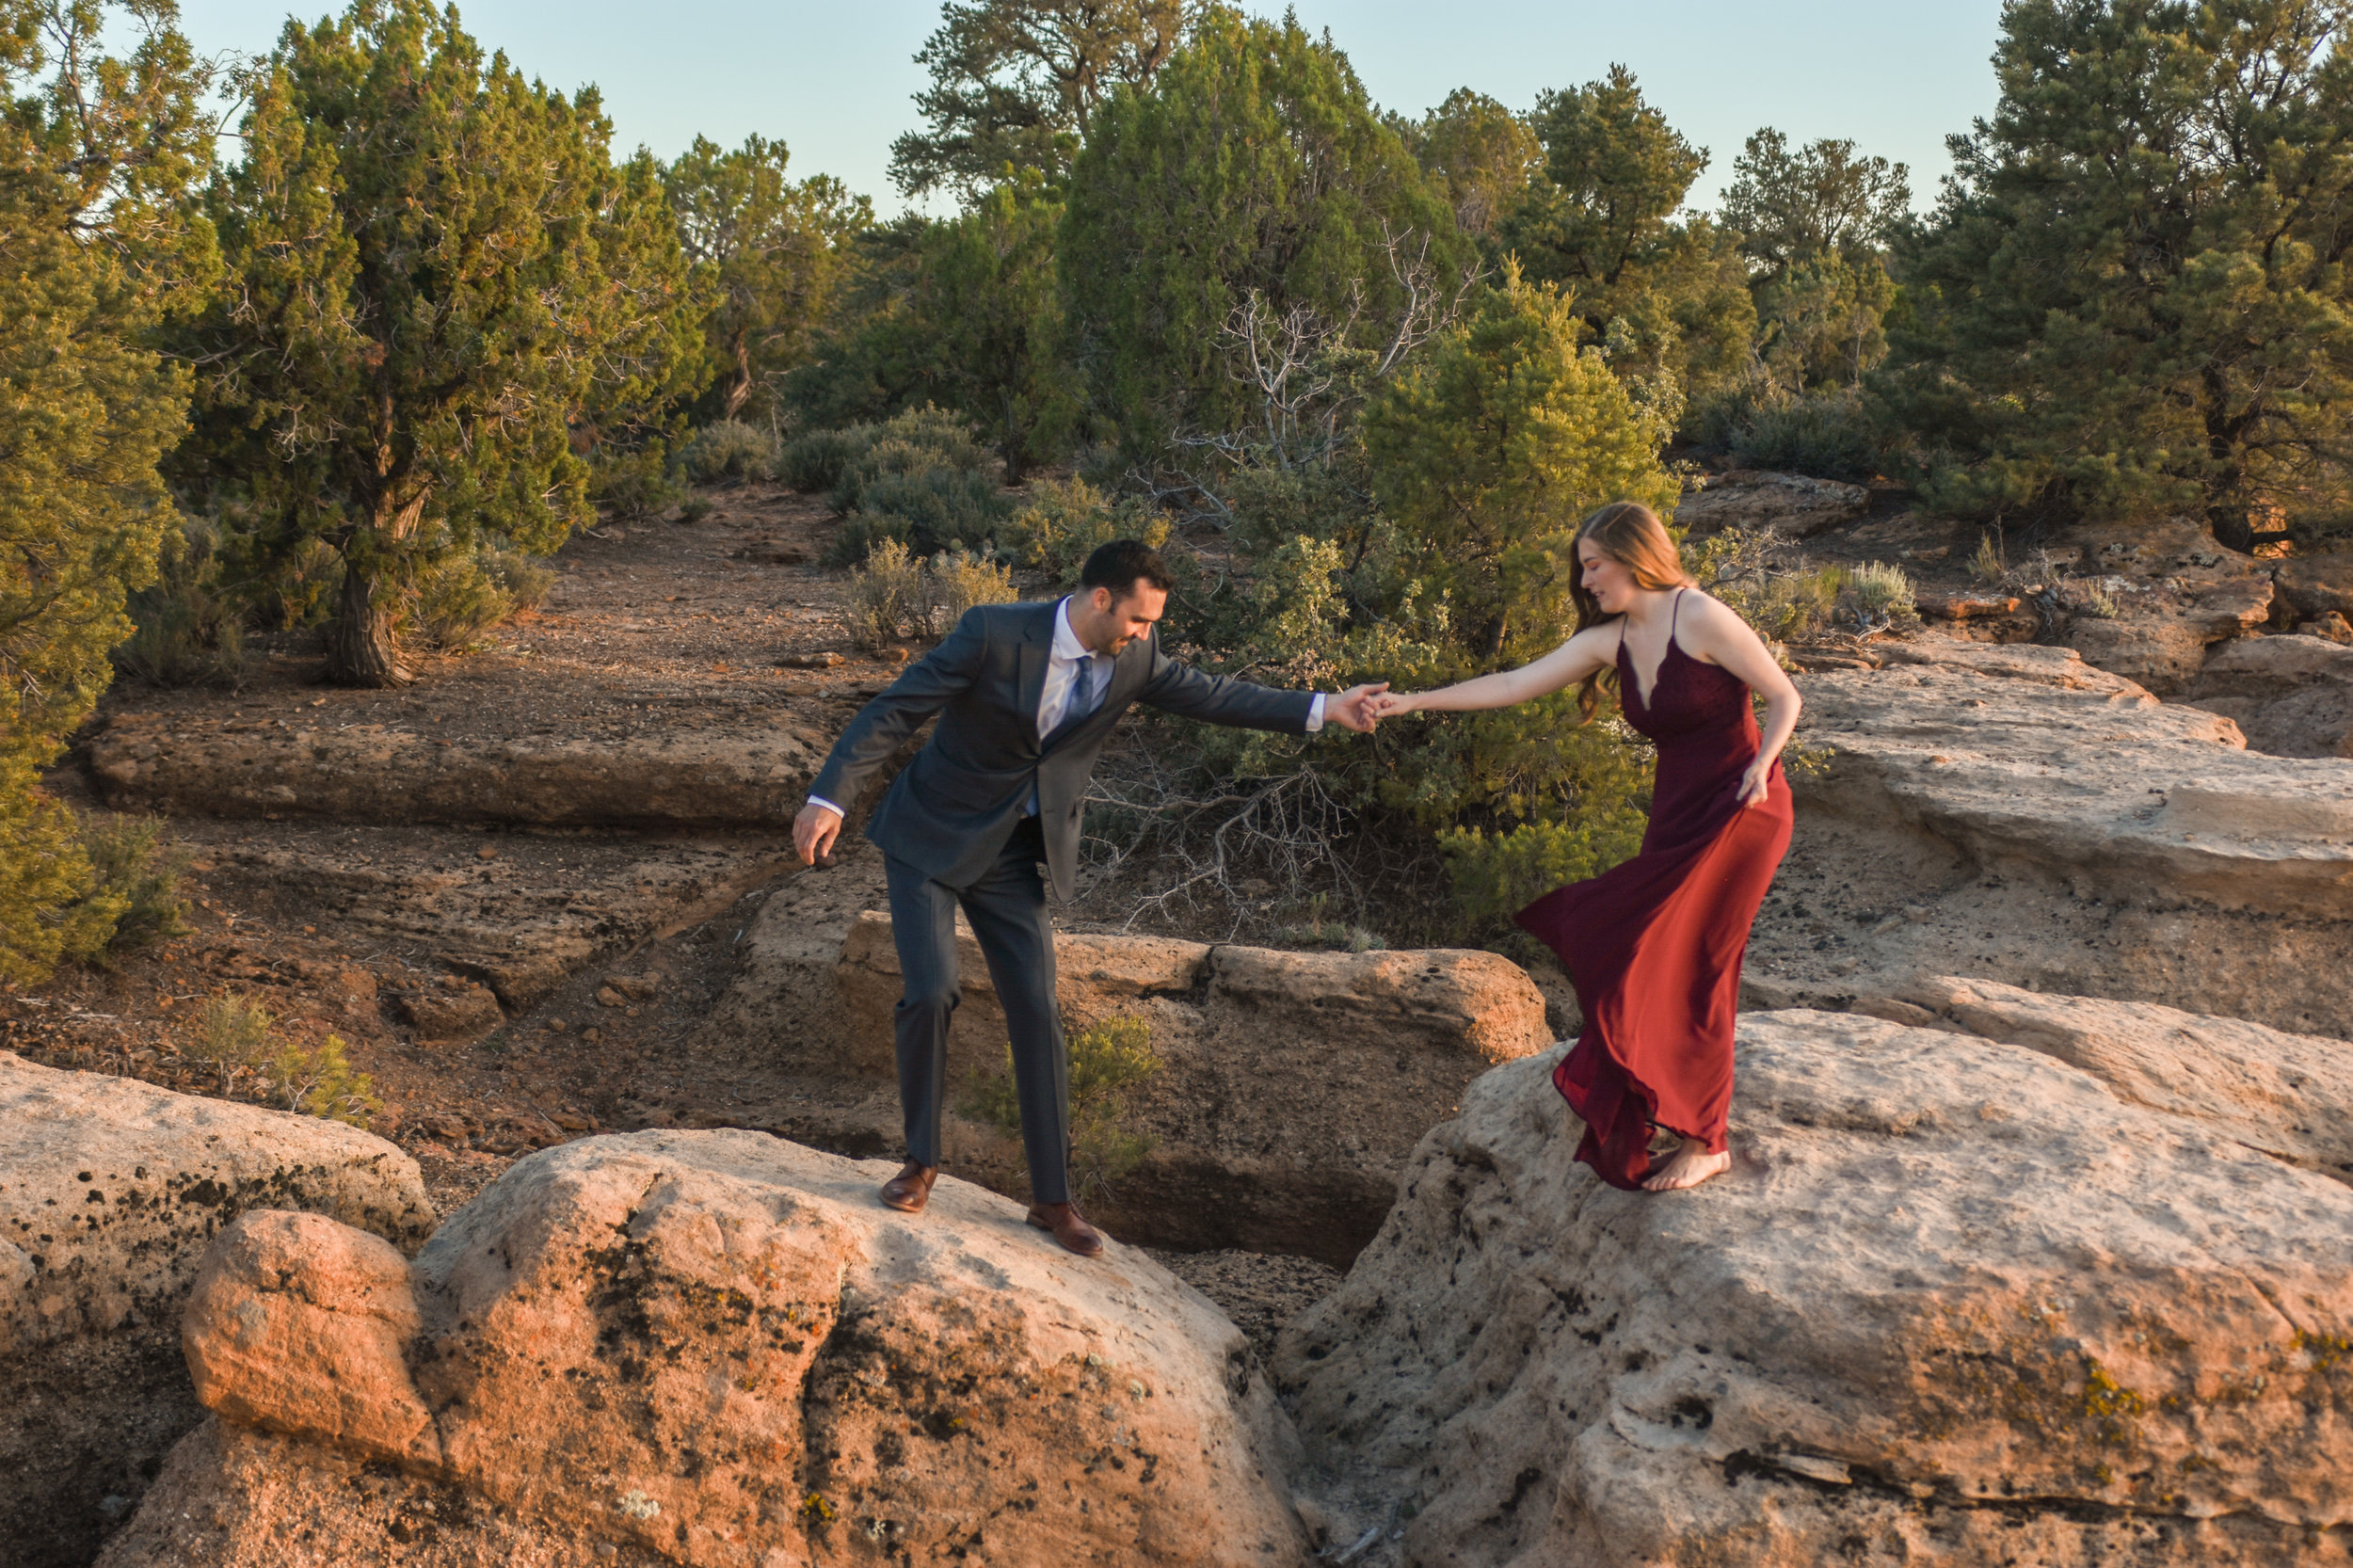 zionnationalparkengagementphotos (38 of 53).jpg